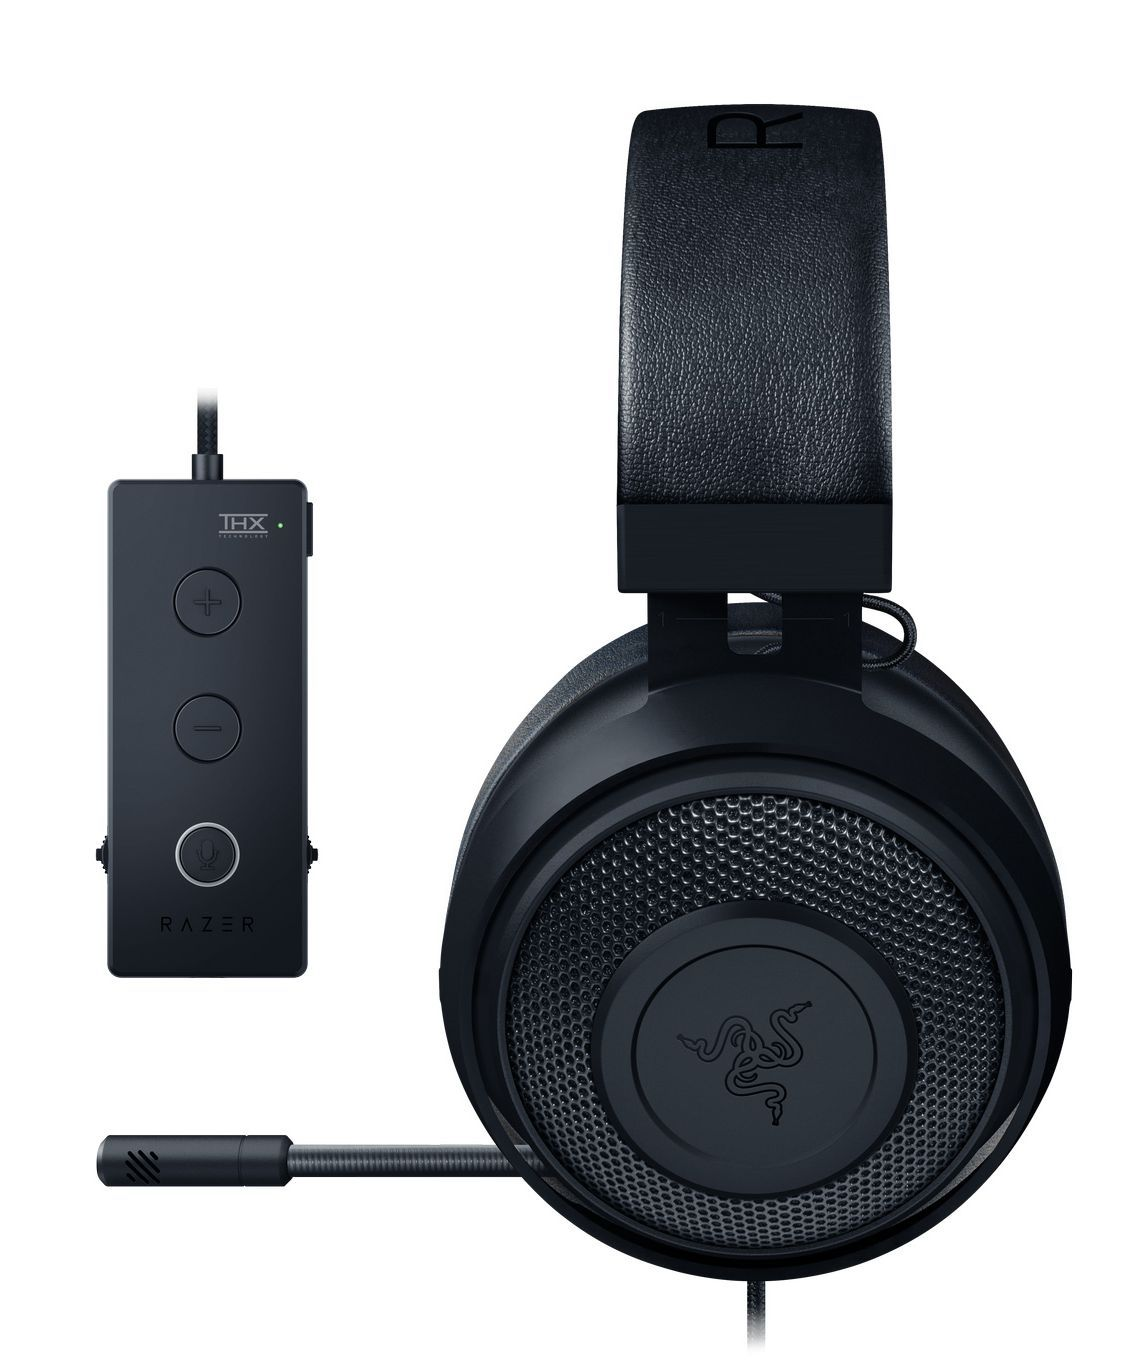 Гейминг слушалки Razer Kraken Tournament Edition - Black - 4